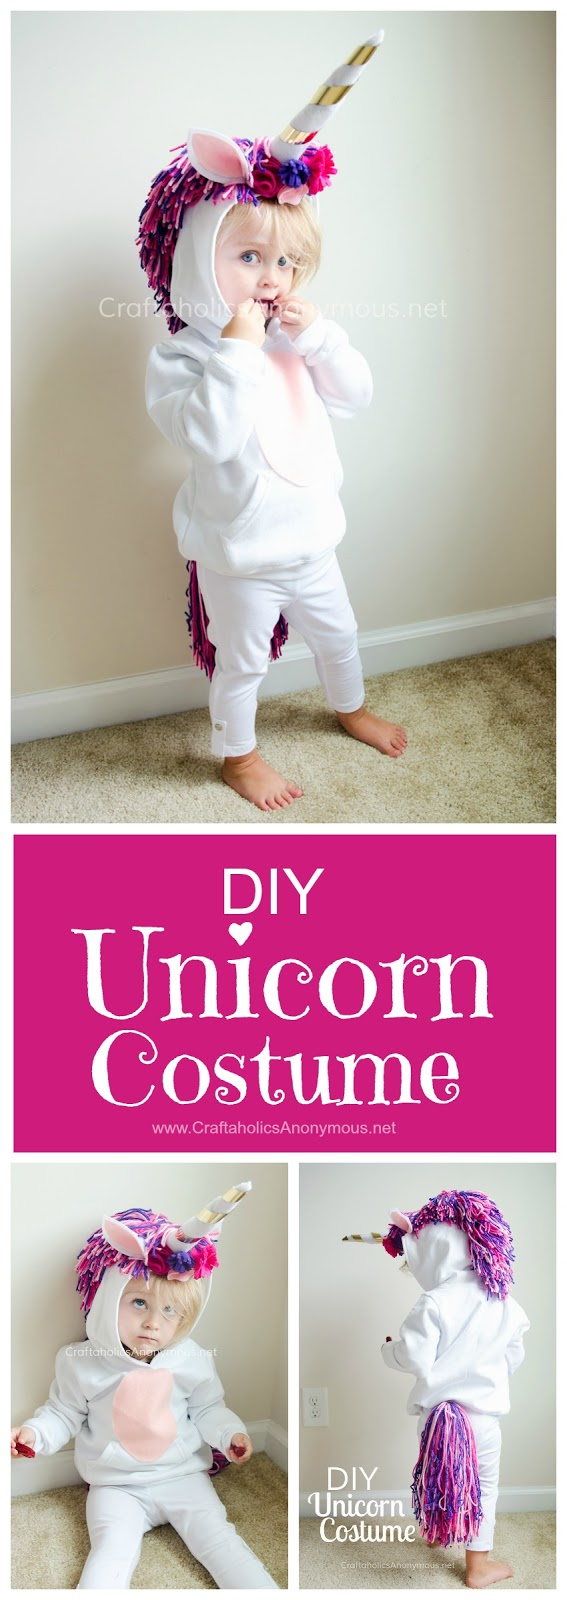 How to make an easy unicorn costume for kids